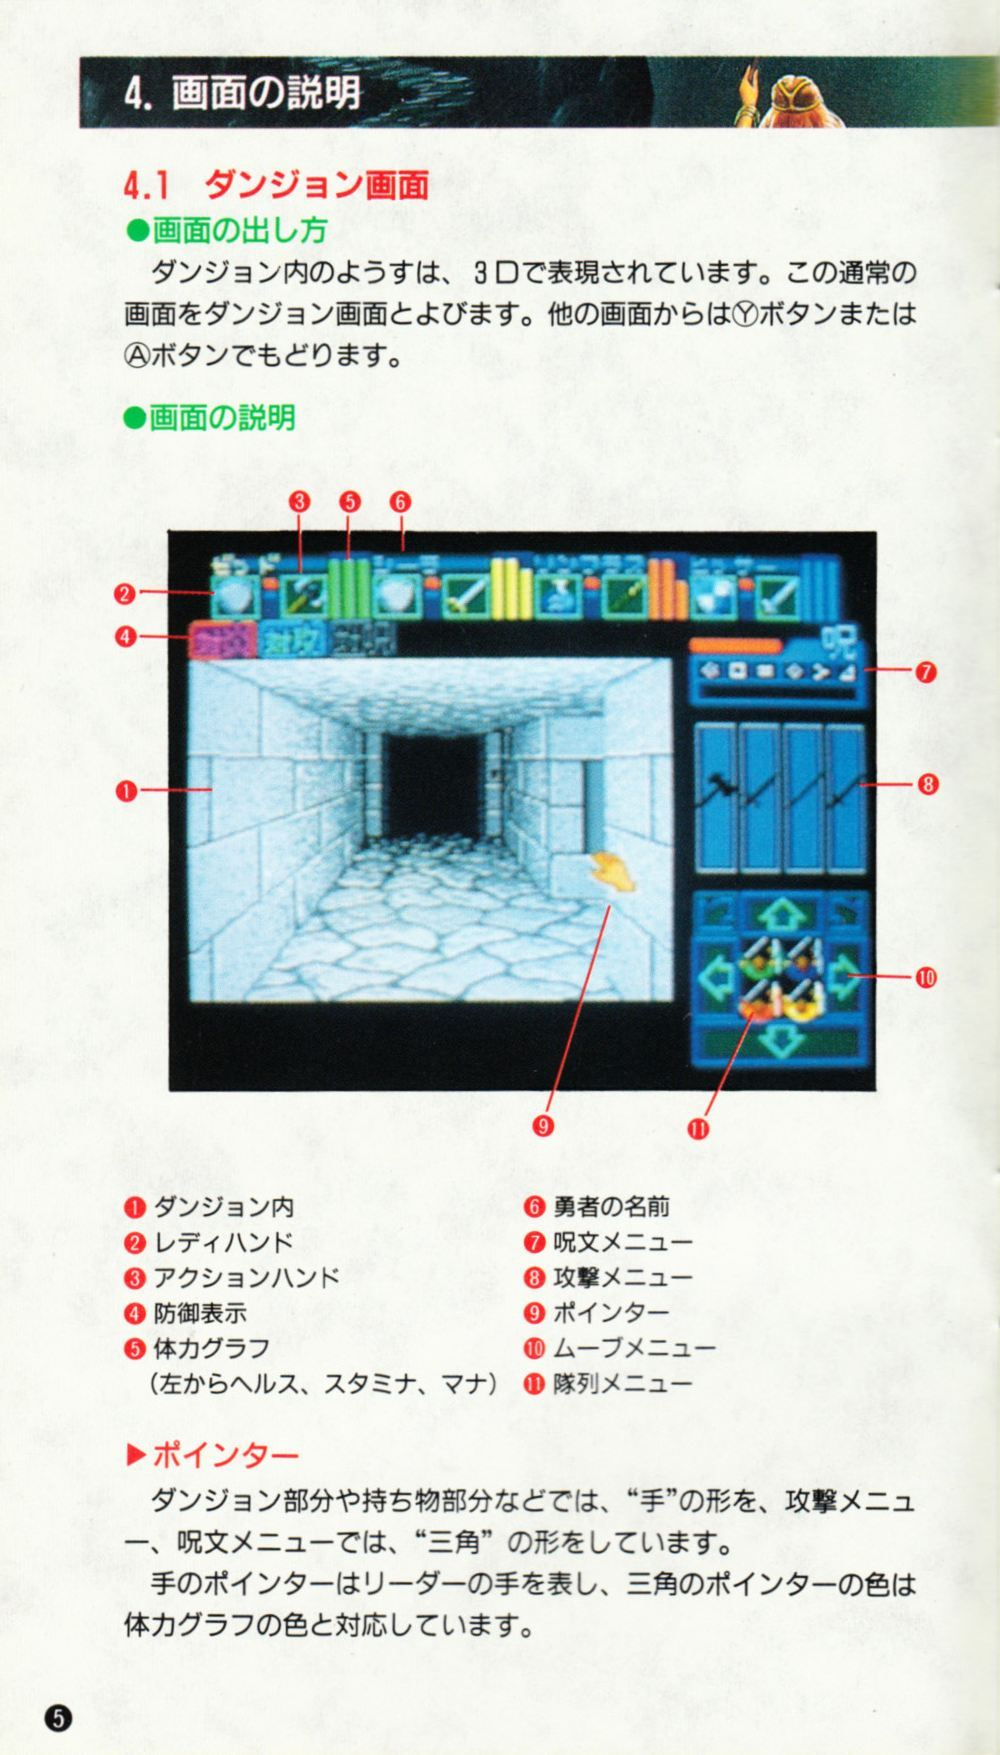 Game - Dungeon Master - JP - Super Famicom - Manual - Page 008 - Scan